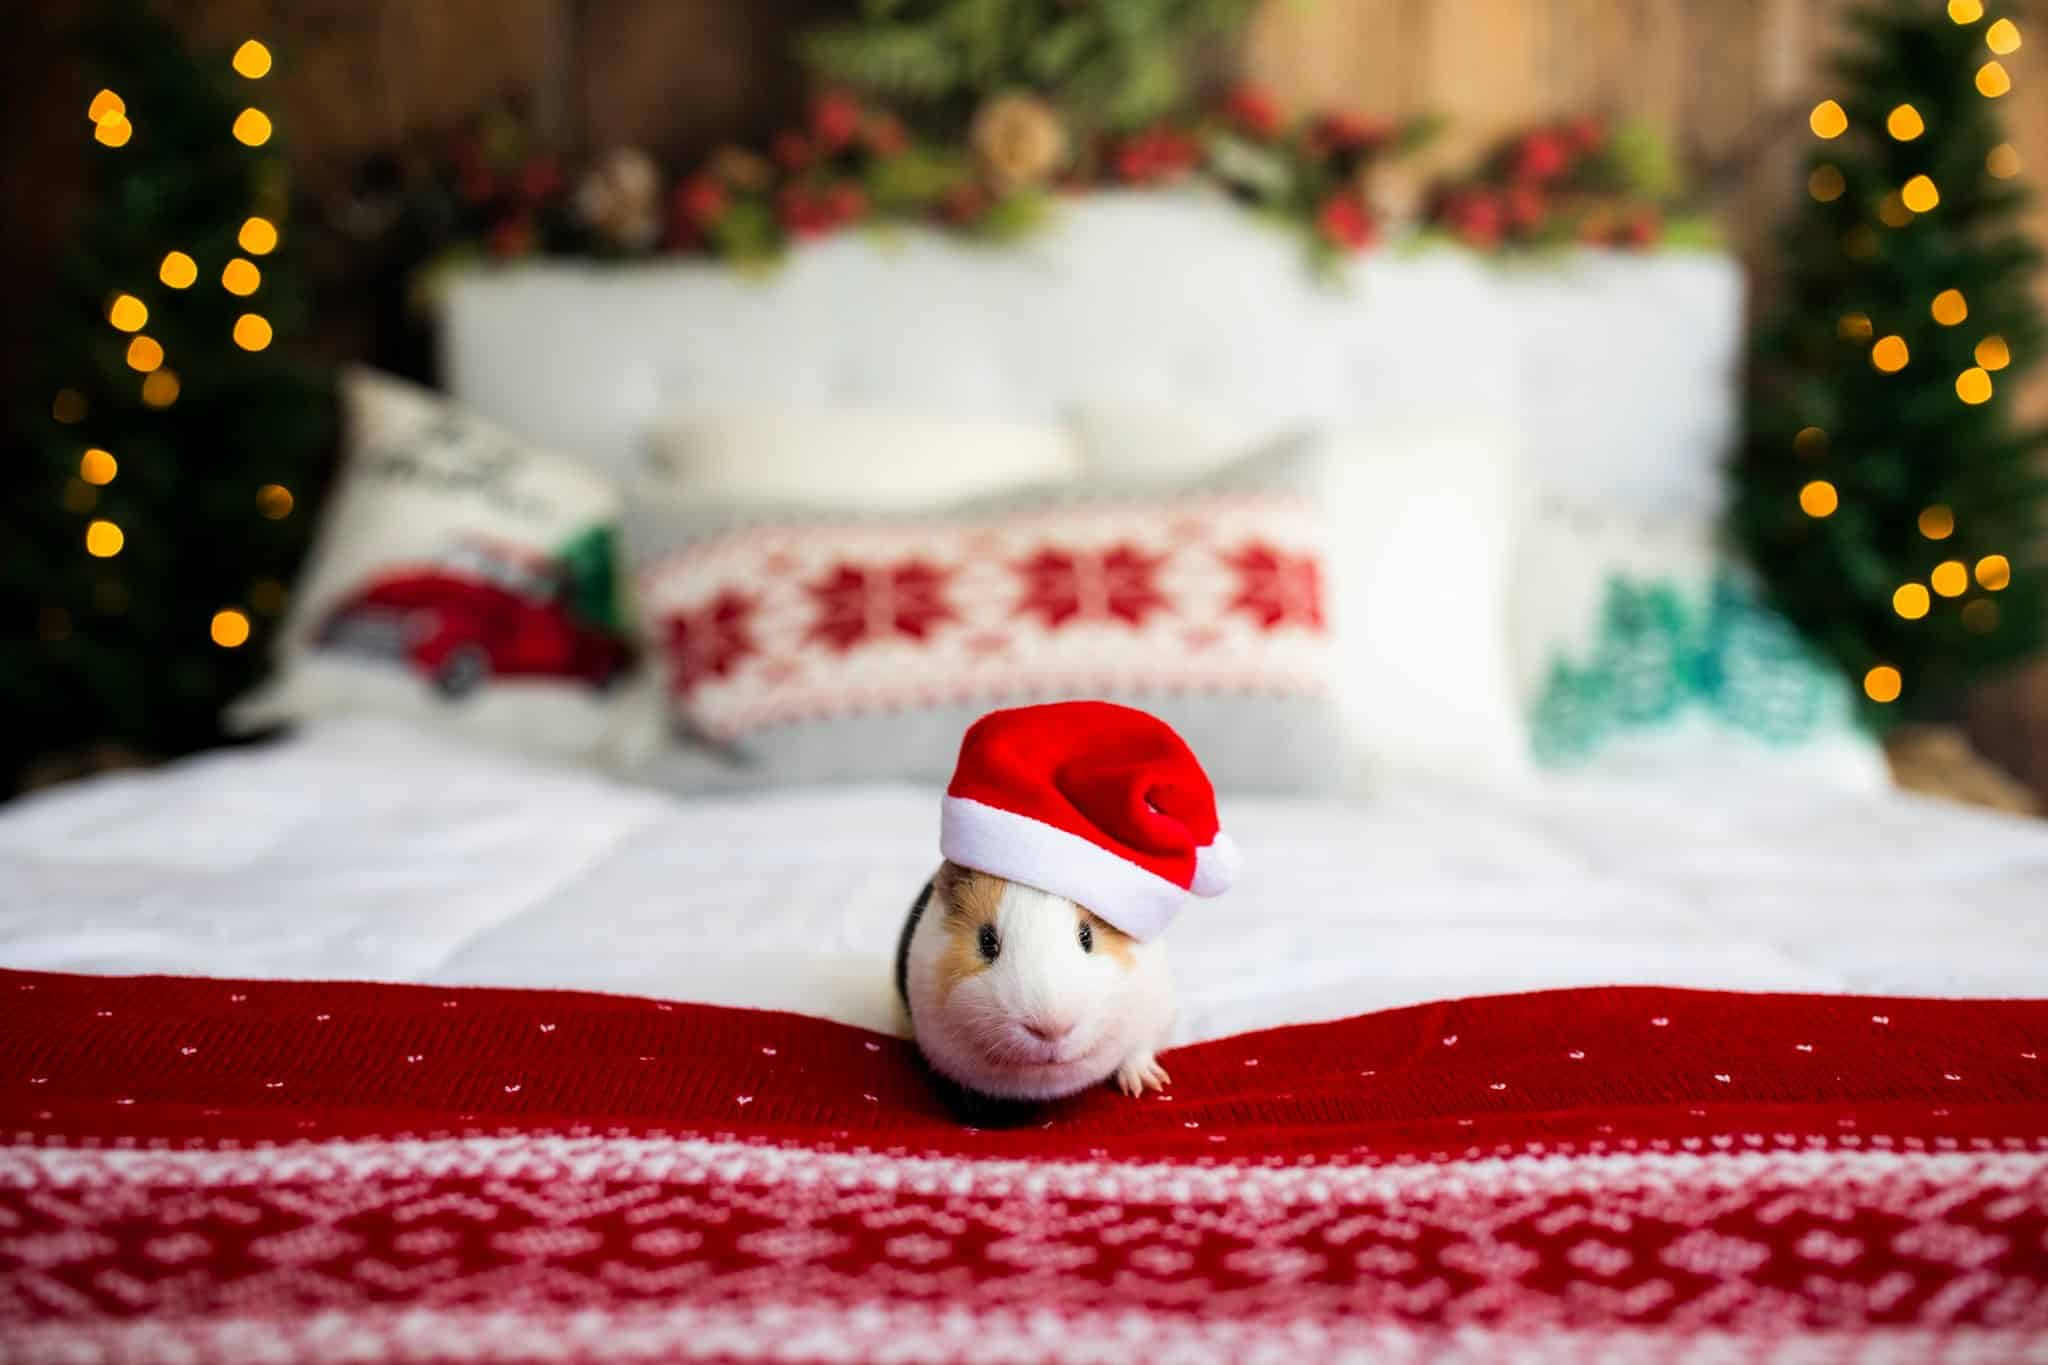 guinea pigs are beautiful animals, and this one is sitting on a bed and wears a Christmas hat